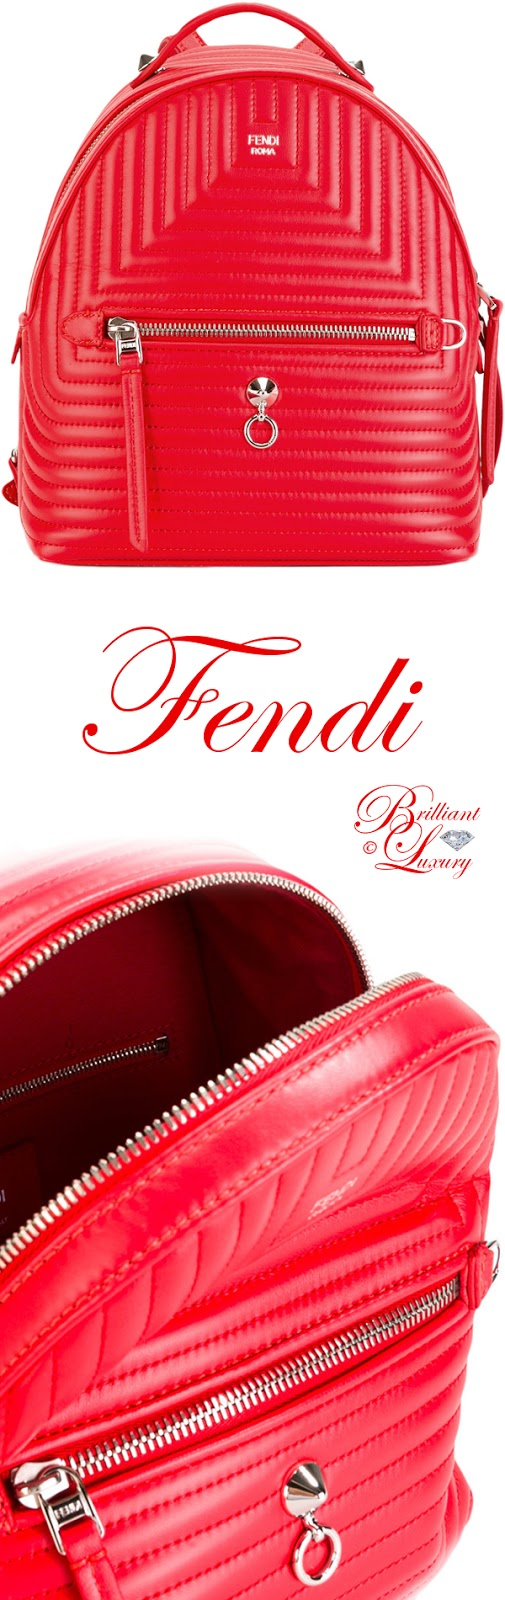 Brilliant Luxury ♦ Fendi backpack